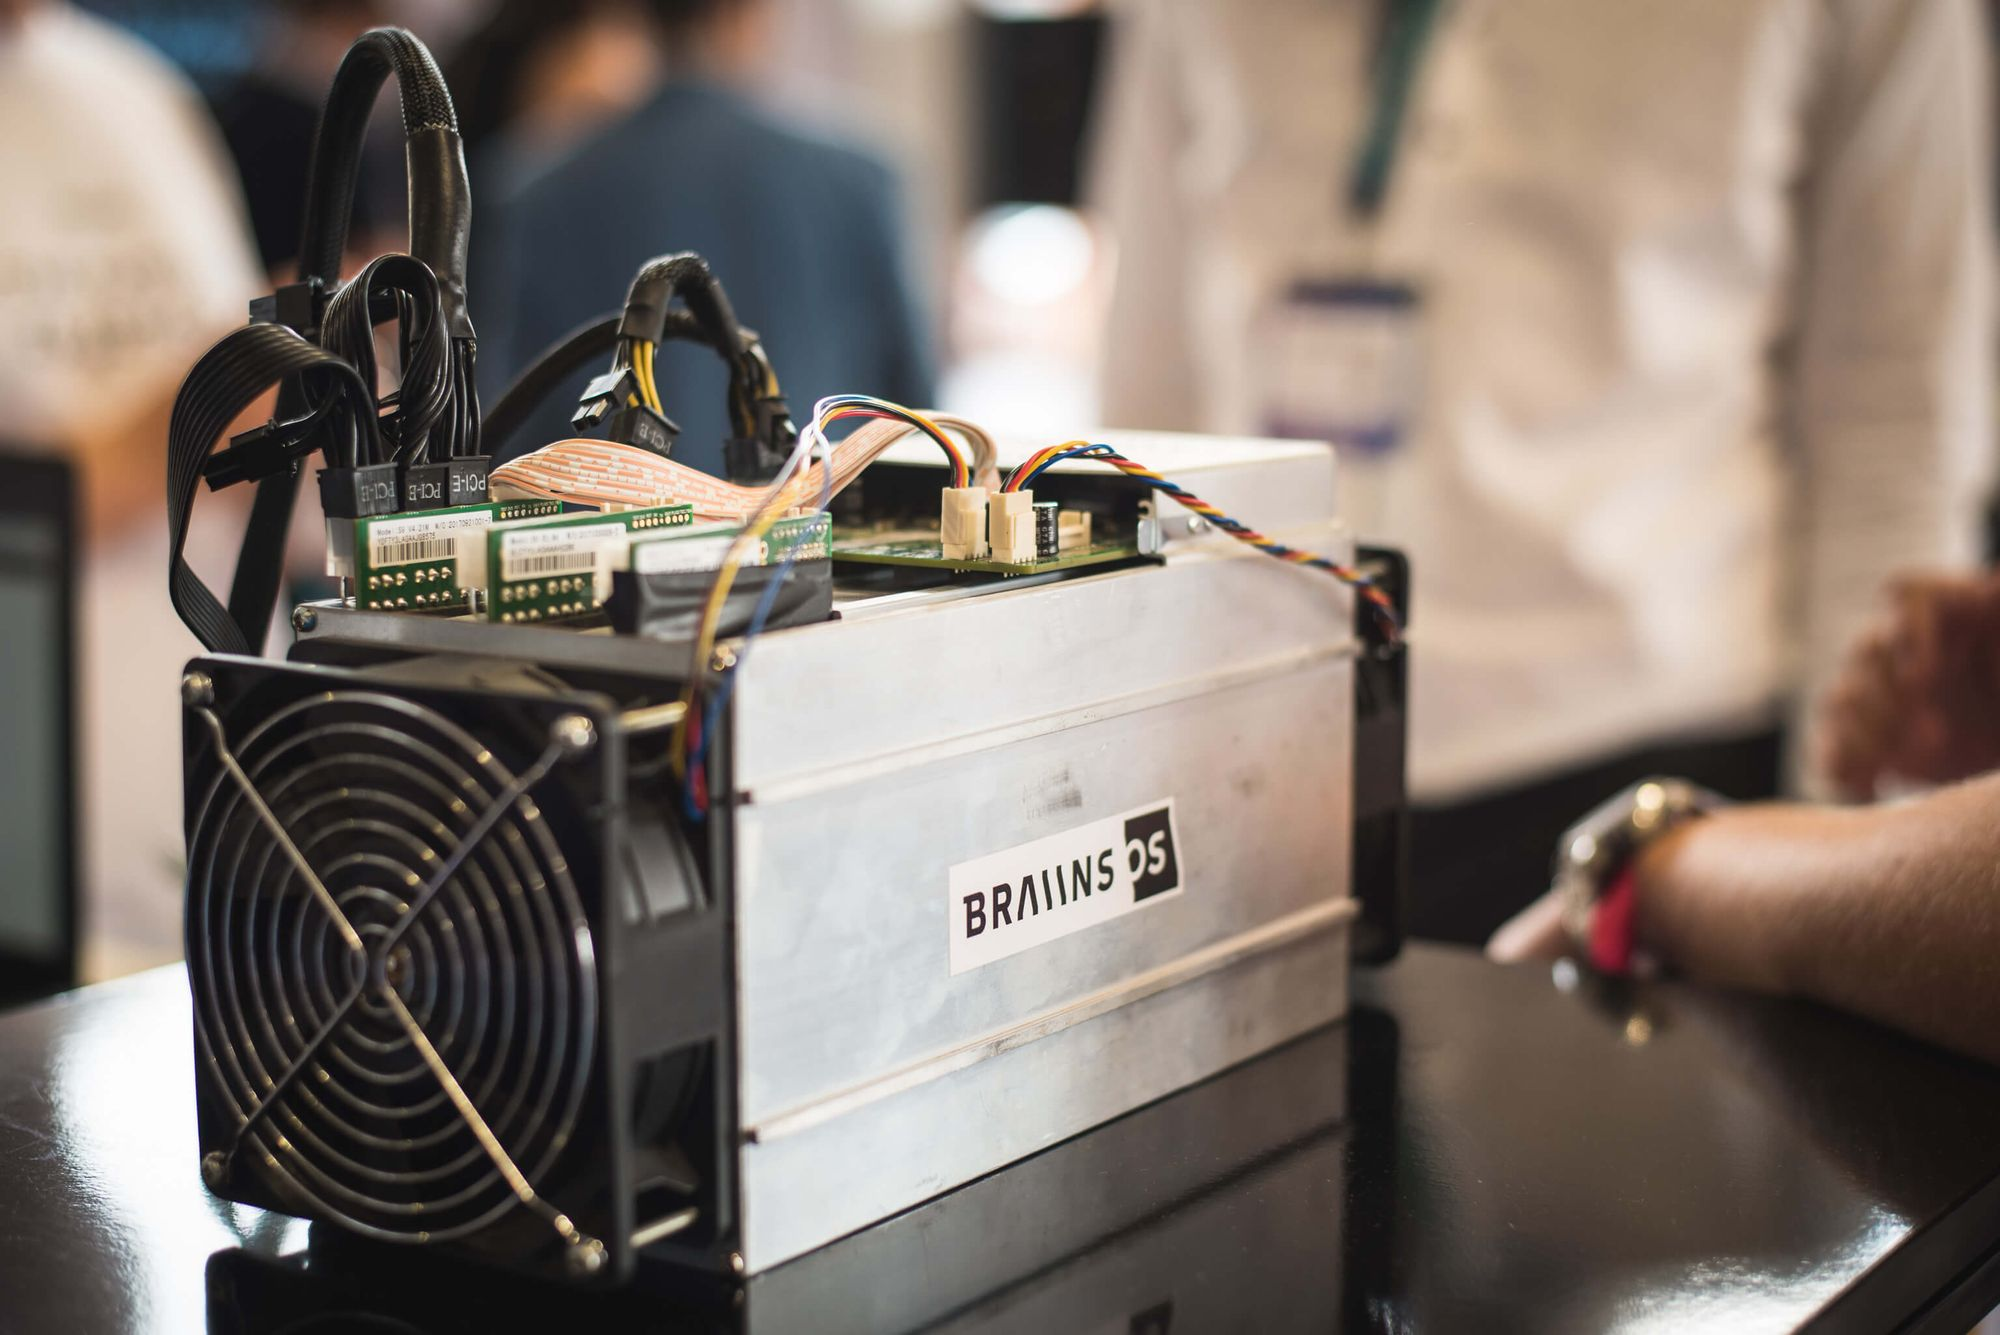 A single Antminer S9. By Braiins.